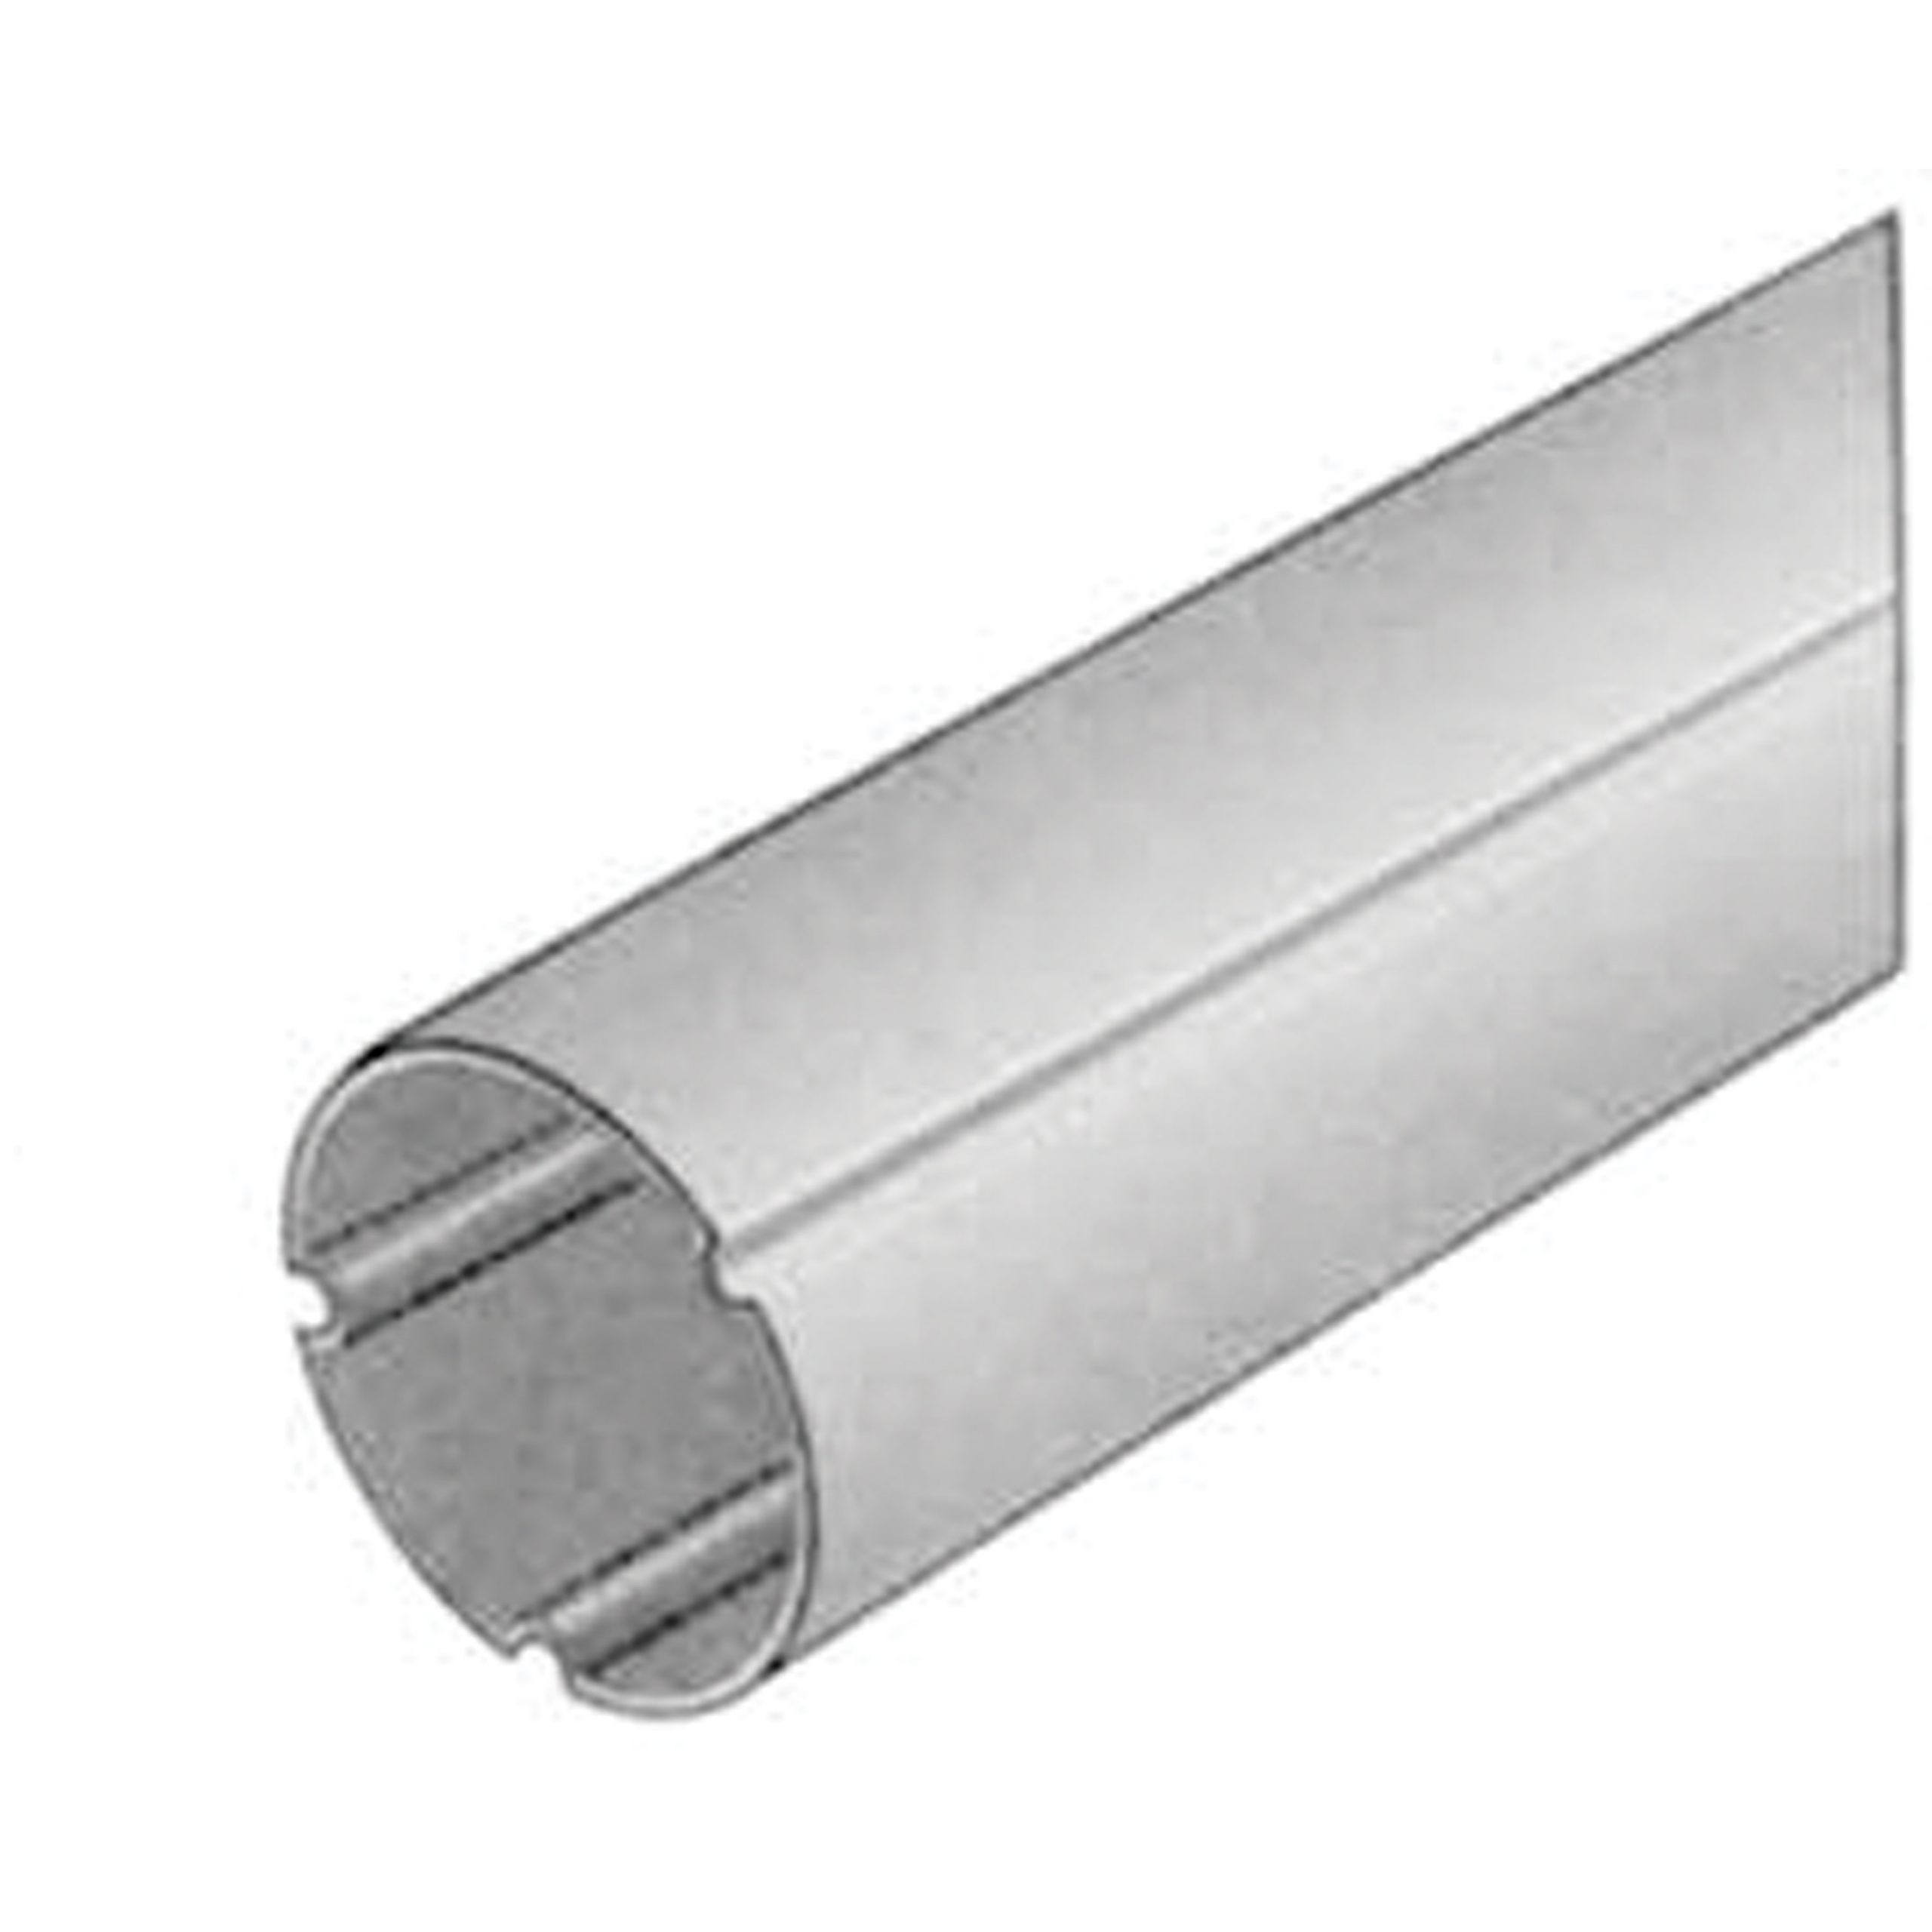 Dometic Replacement Aluminum Awning Roller Tube - 17' - RV